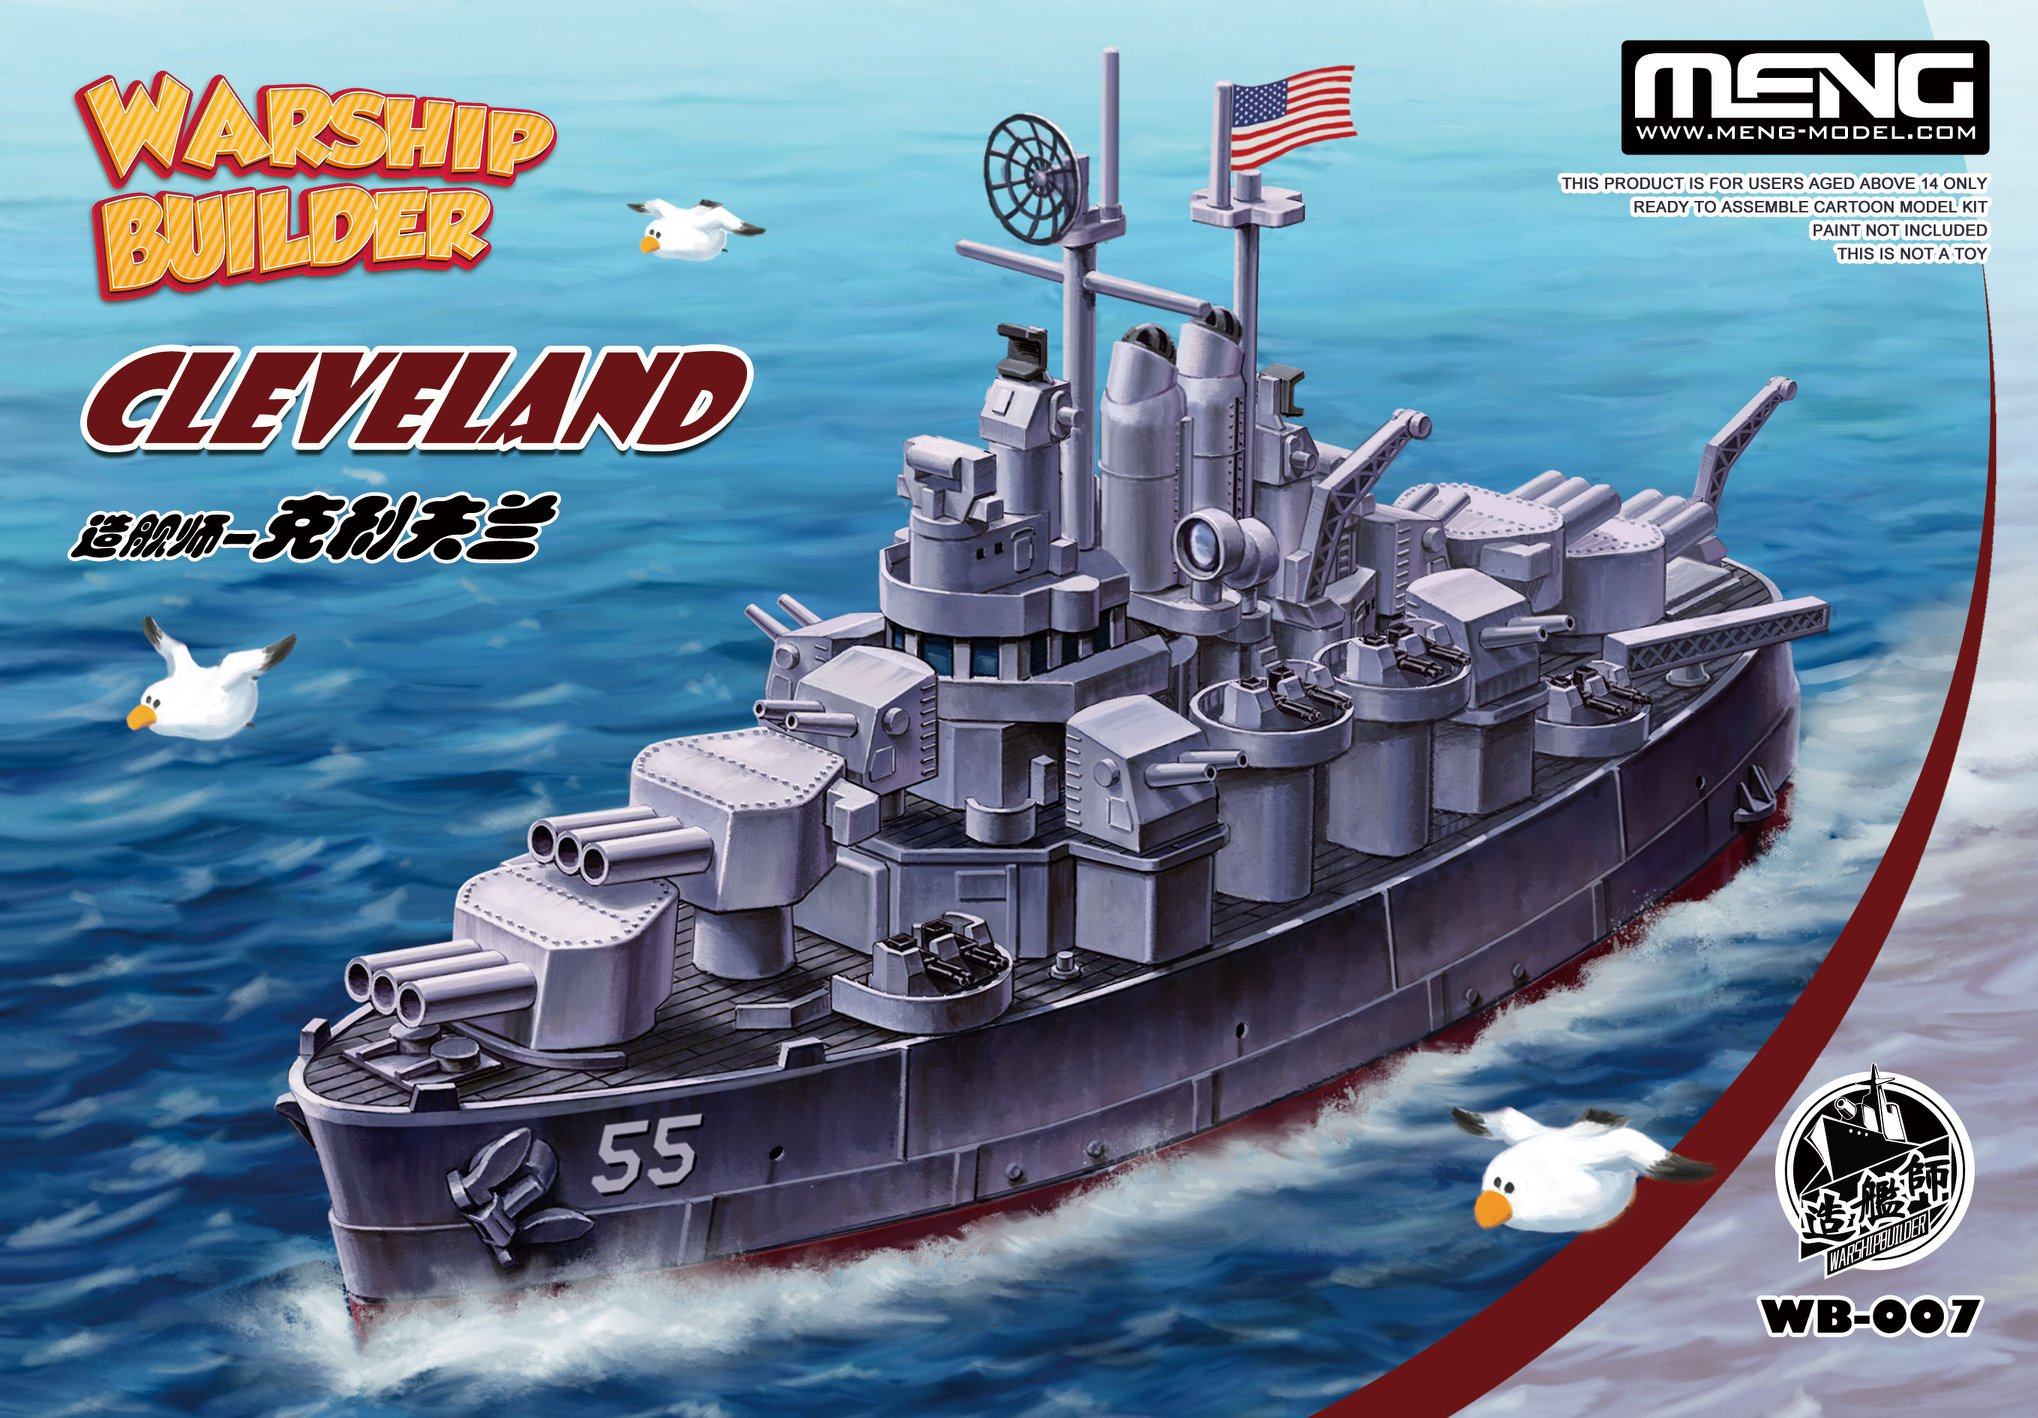 Meng Warship Builder USS Cleveland, Cartoon Model